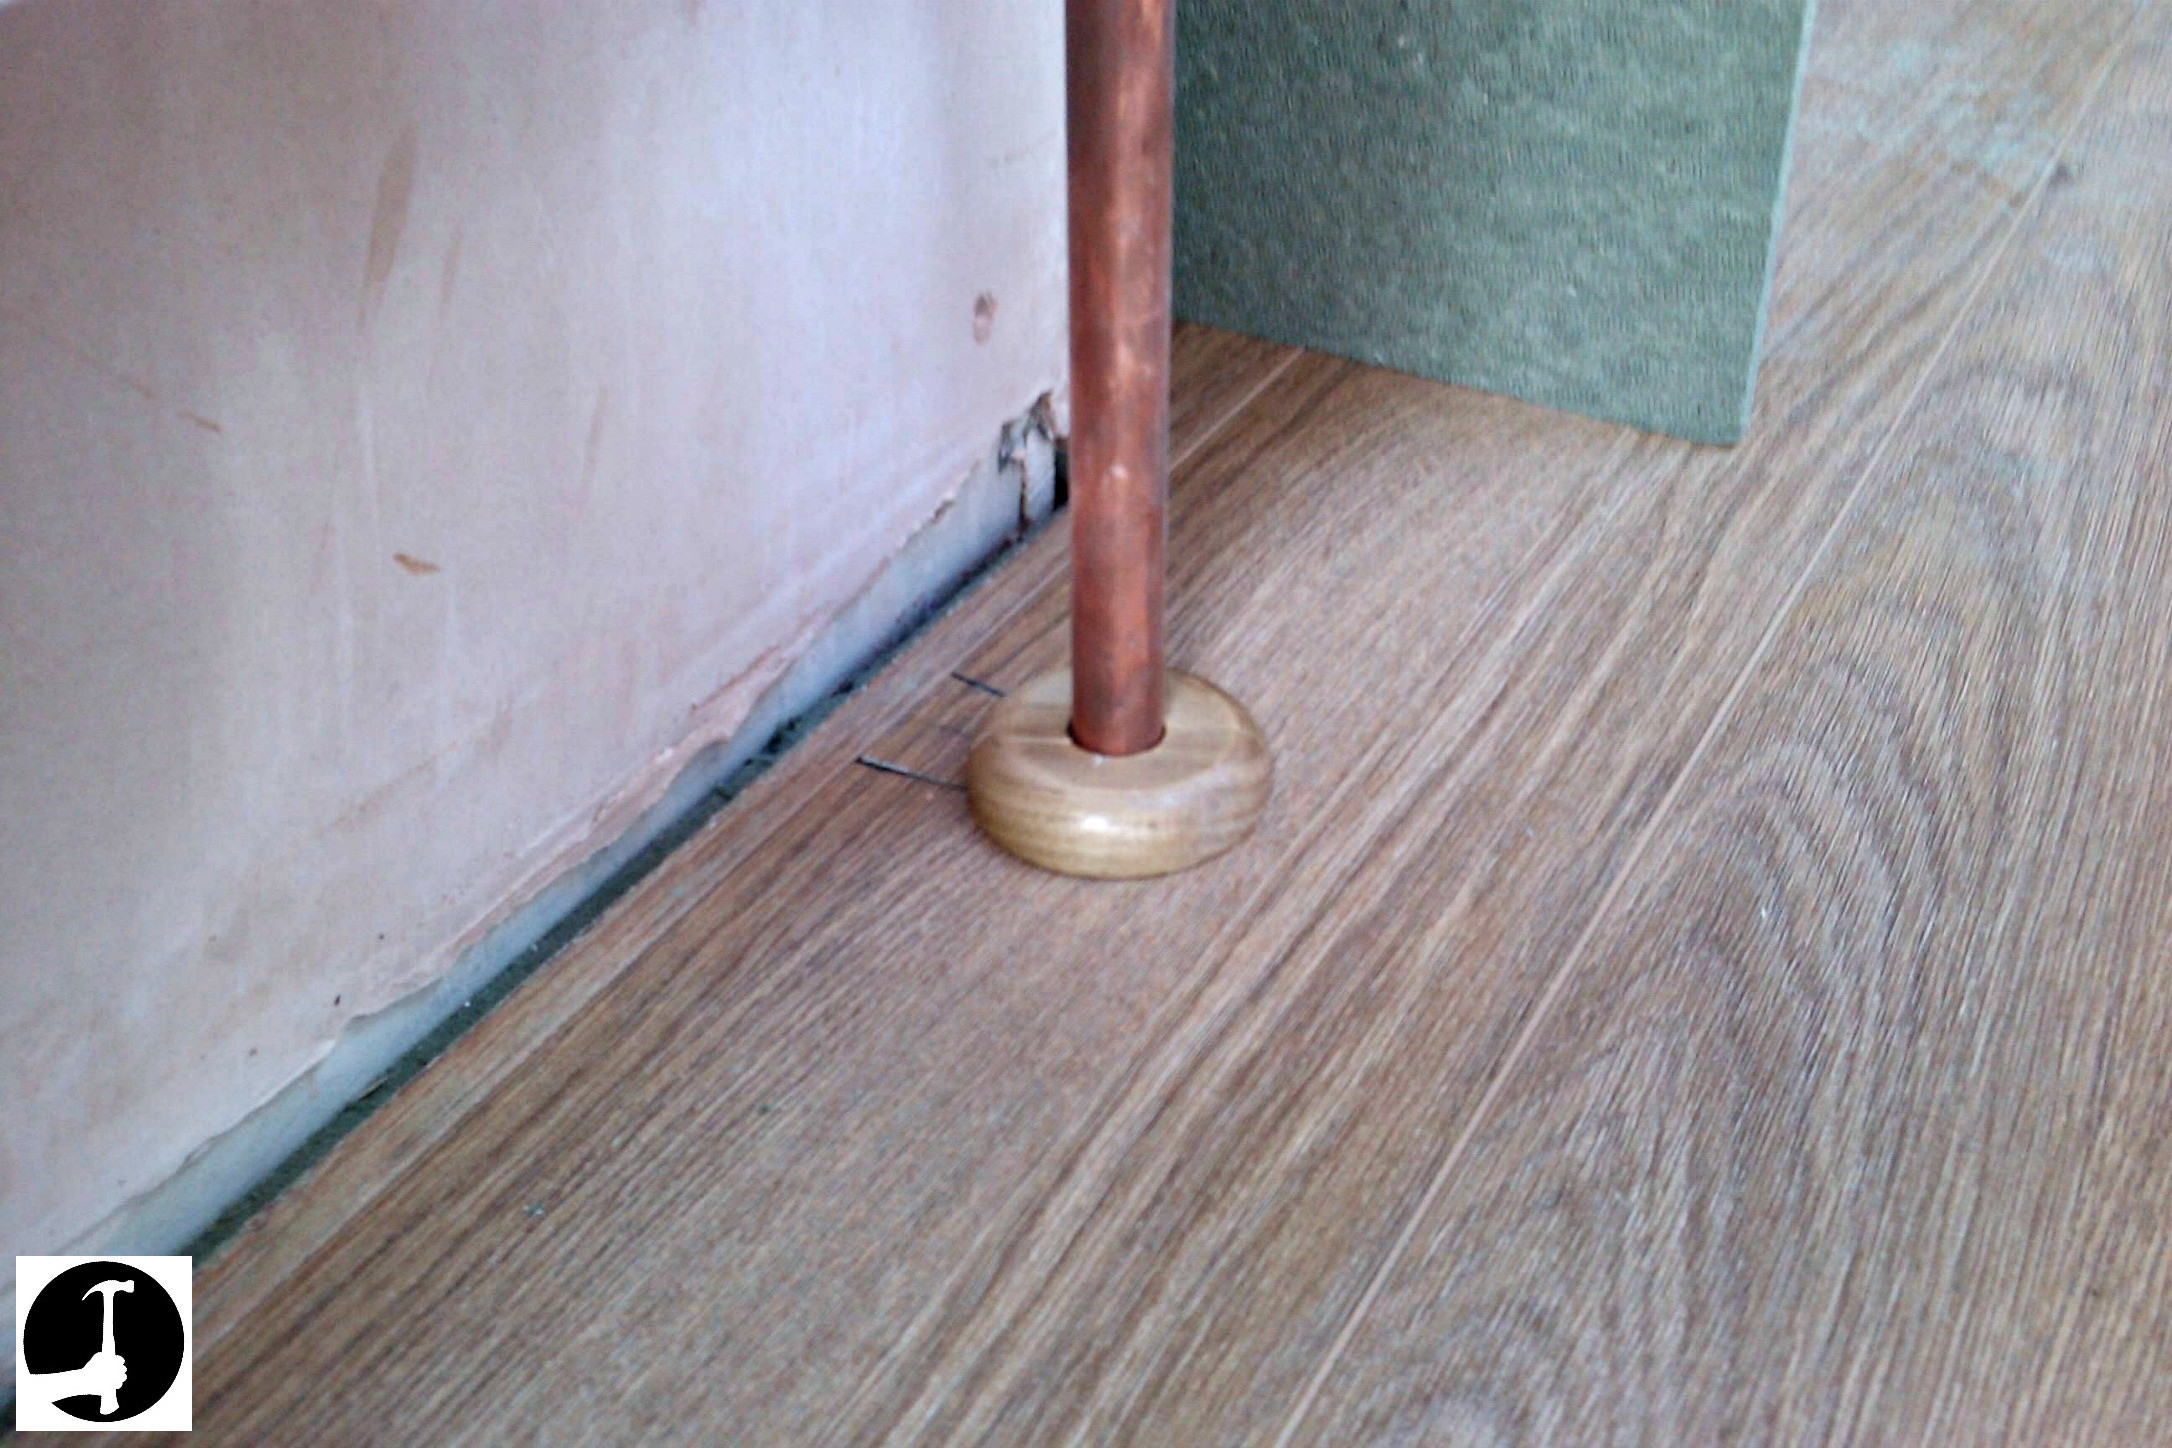 How to Install Hardwood Floors On Second Floor Of How to Install Laminate Flooring with Ease Glued Glue Less Systems with How to Cut Laminate Around Pipes